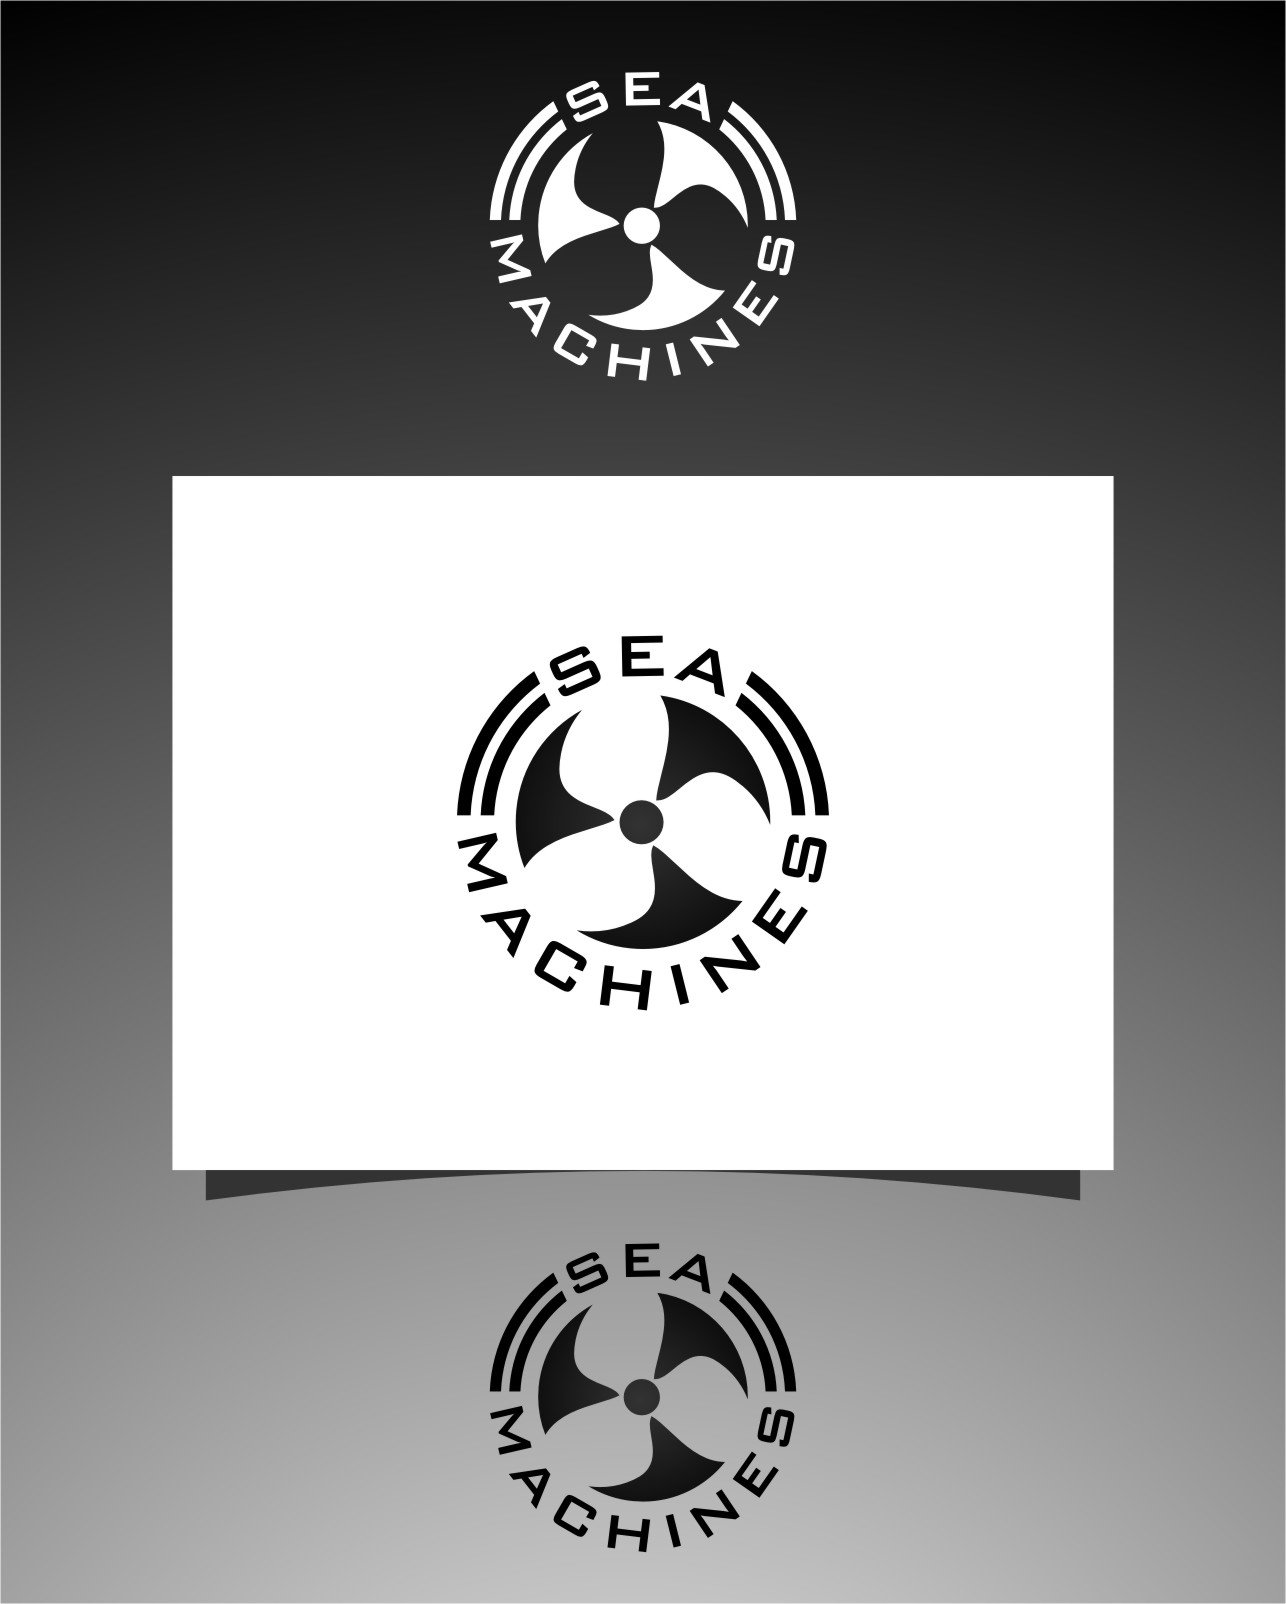 Logo Design by Ngepet_art - Entry No. 154 in the Logo Design Contest Creative Logo Design for SeaMachines.